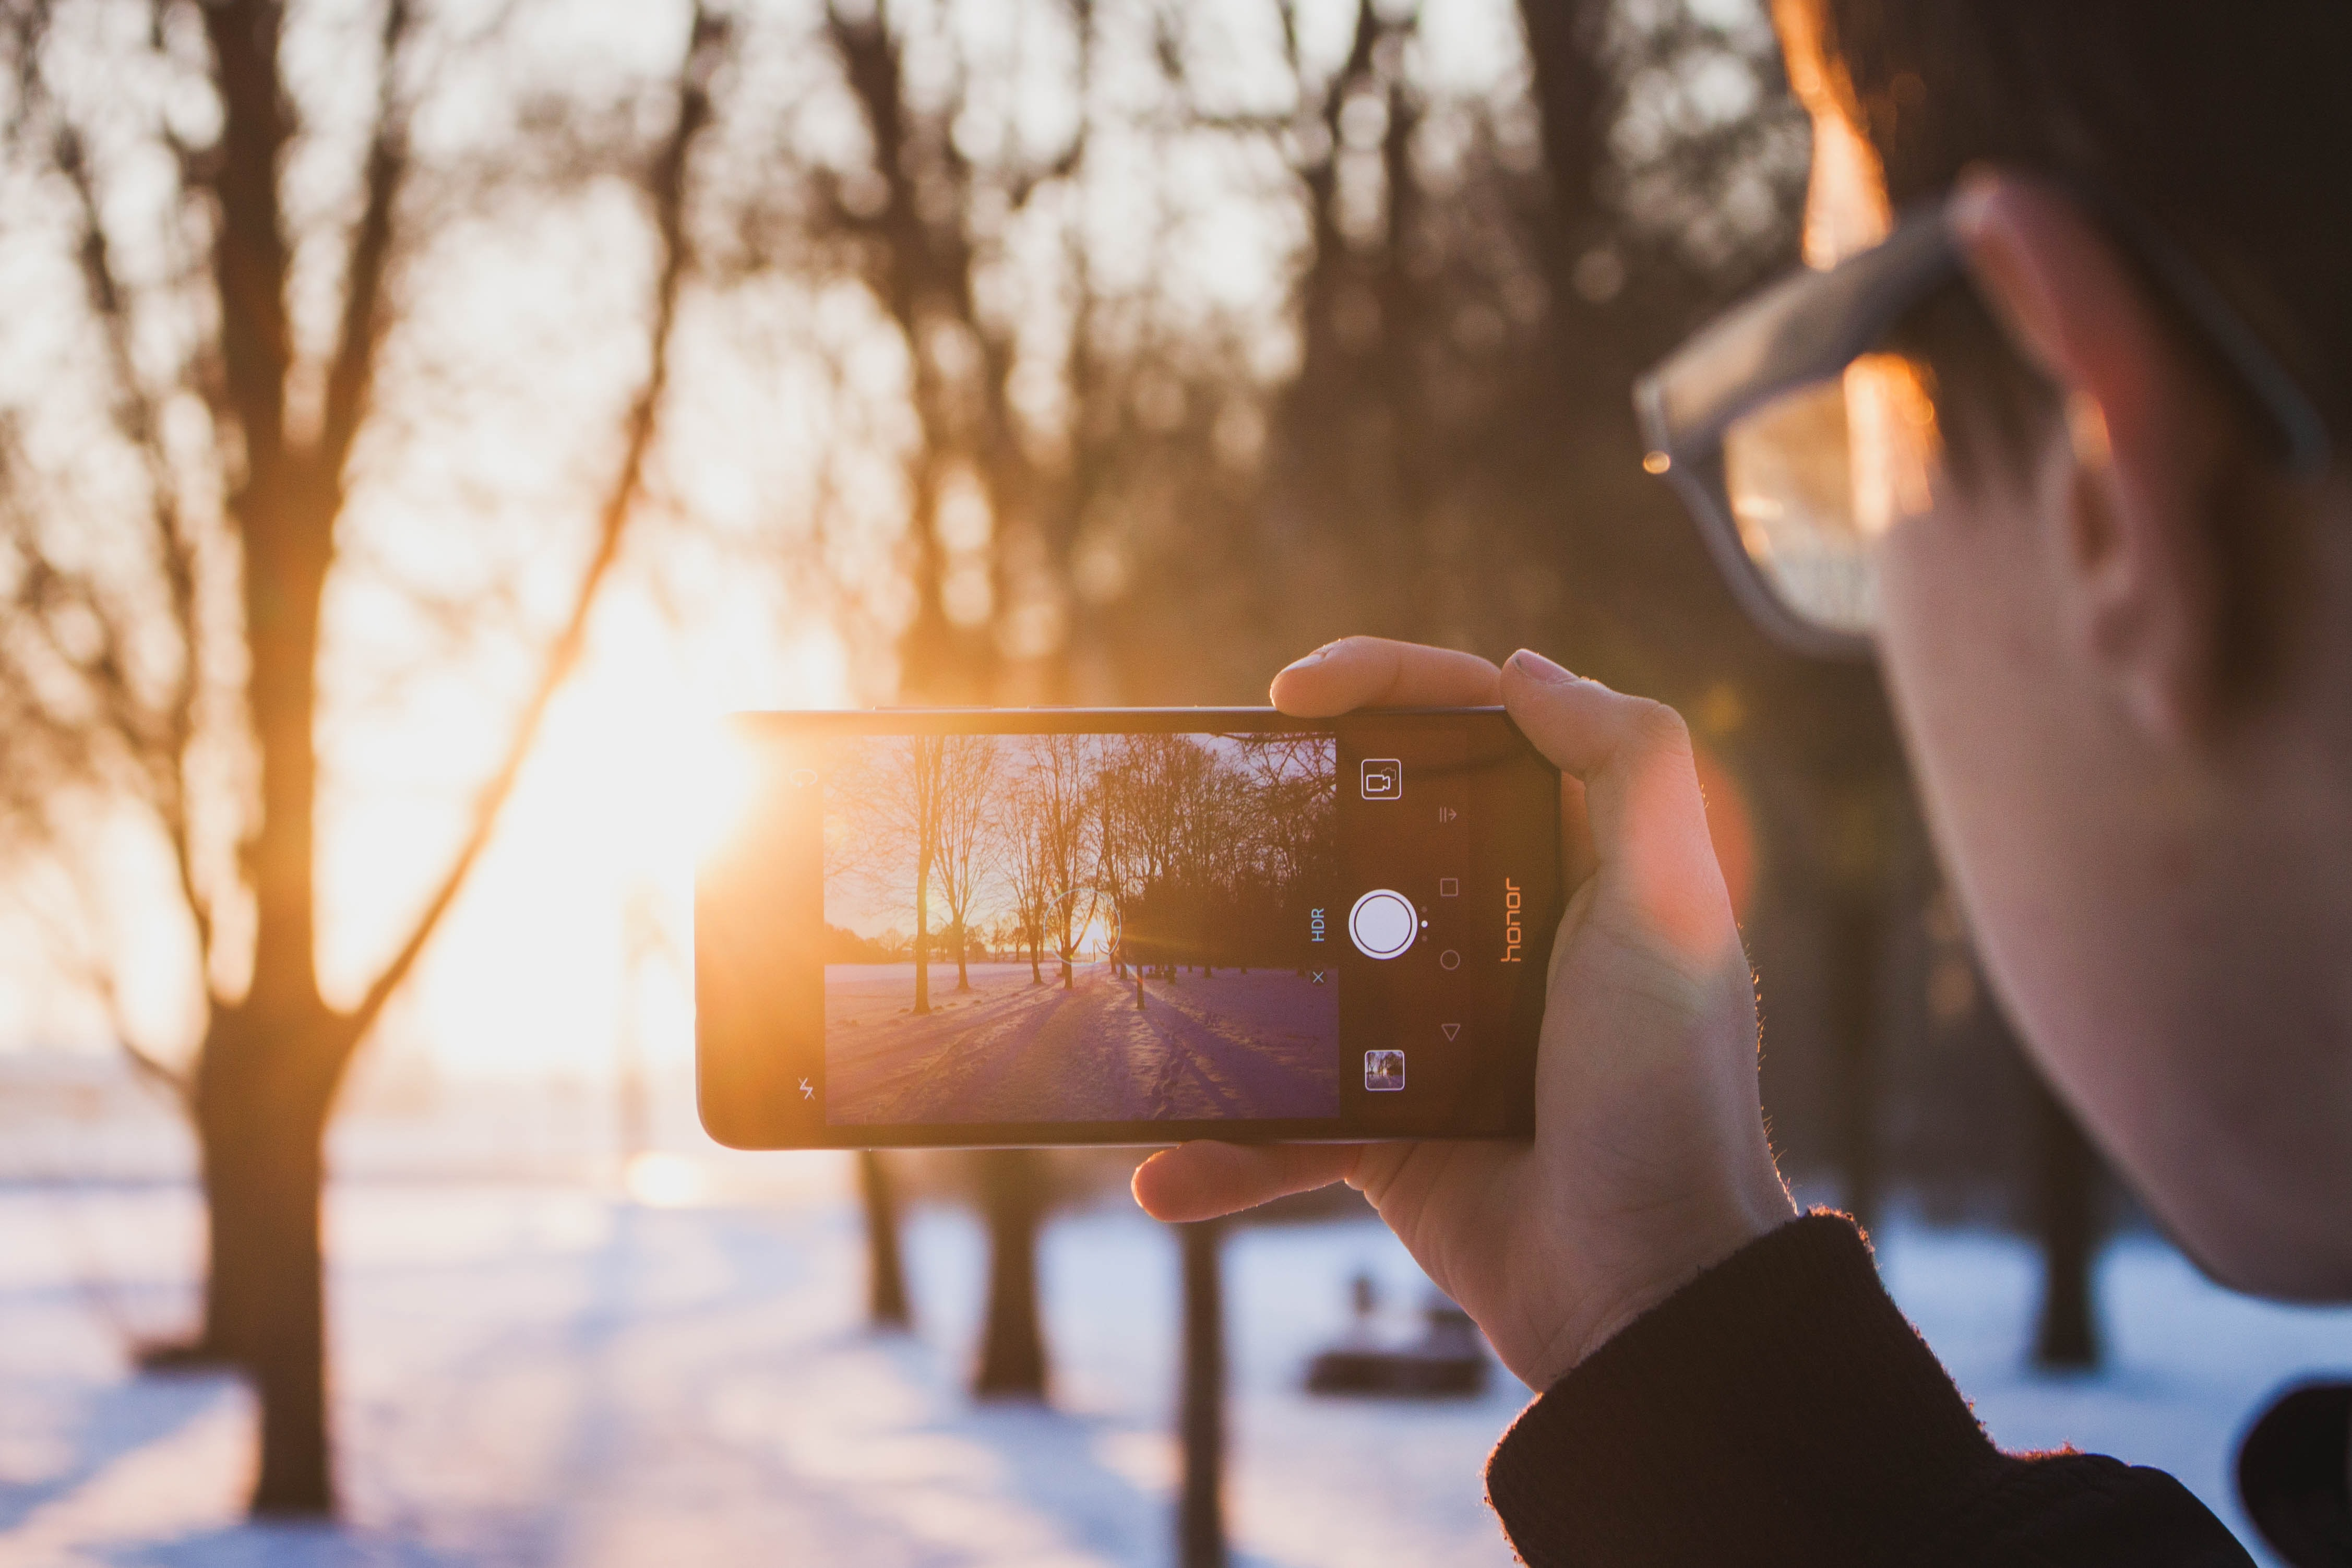 A man taking a photo of bare trees in the winter with a smartphone